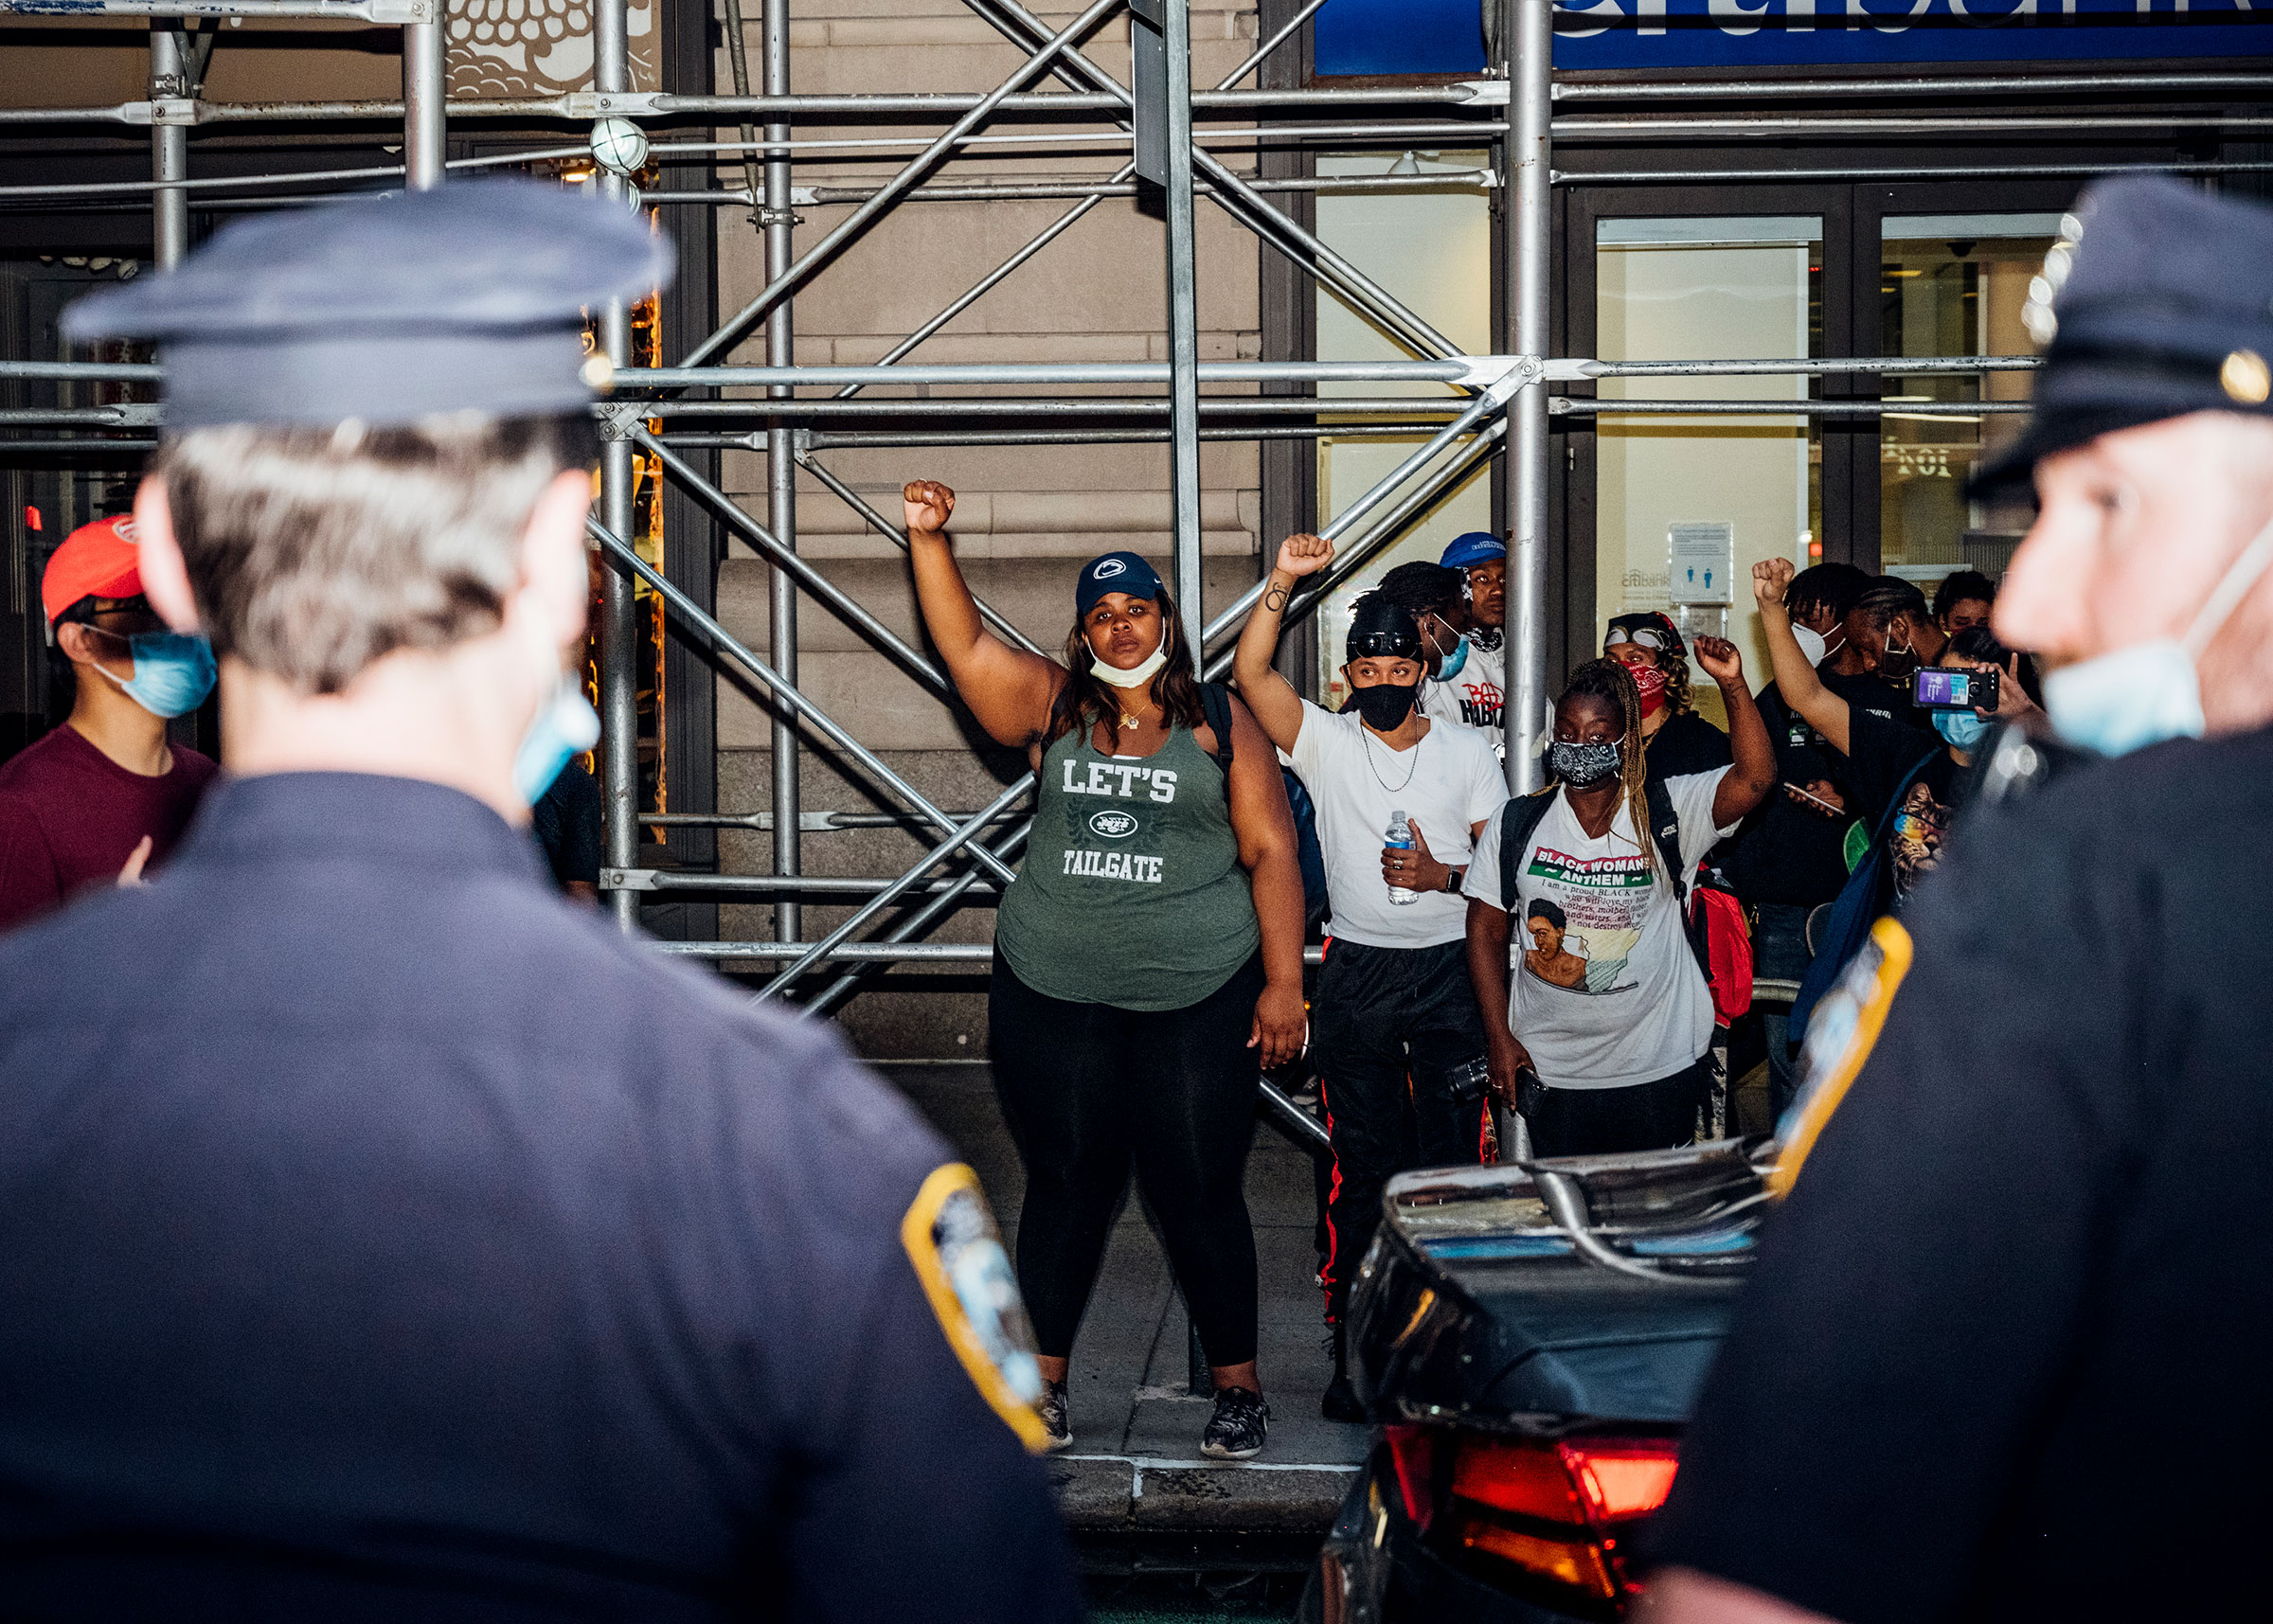 In the wake of George Floyd's death, protesters face off with police officers during another night of demonstrations in Manhattan on May 30, 2020.